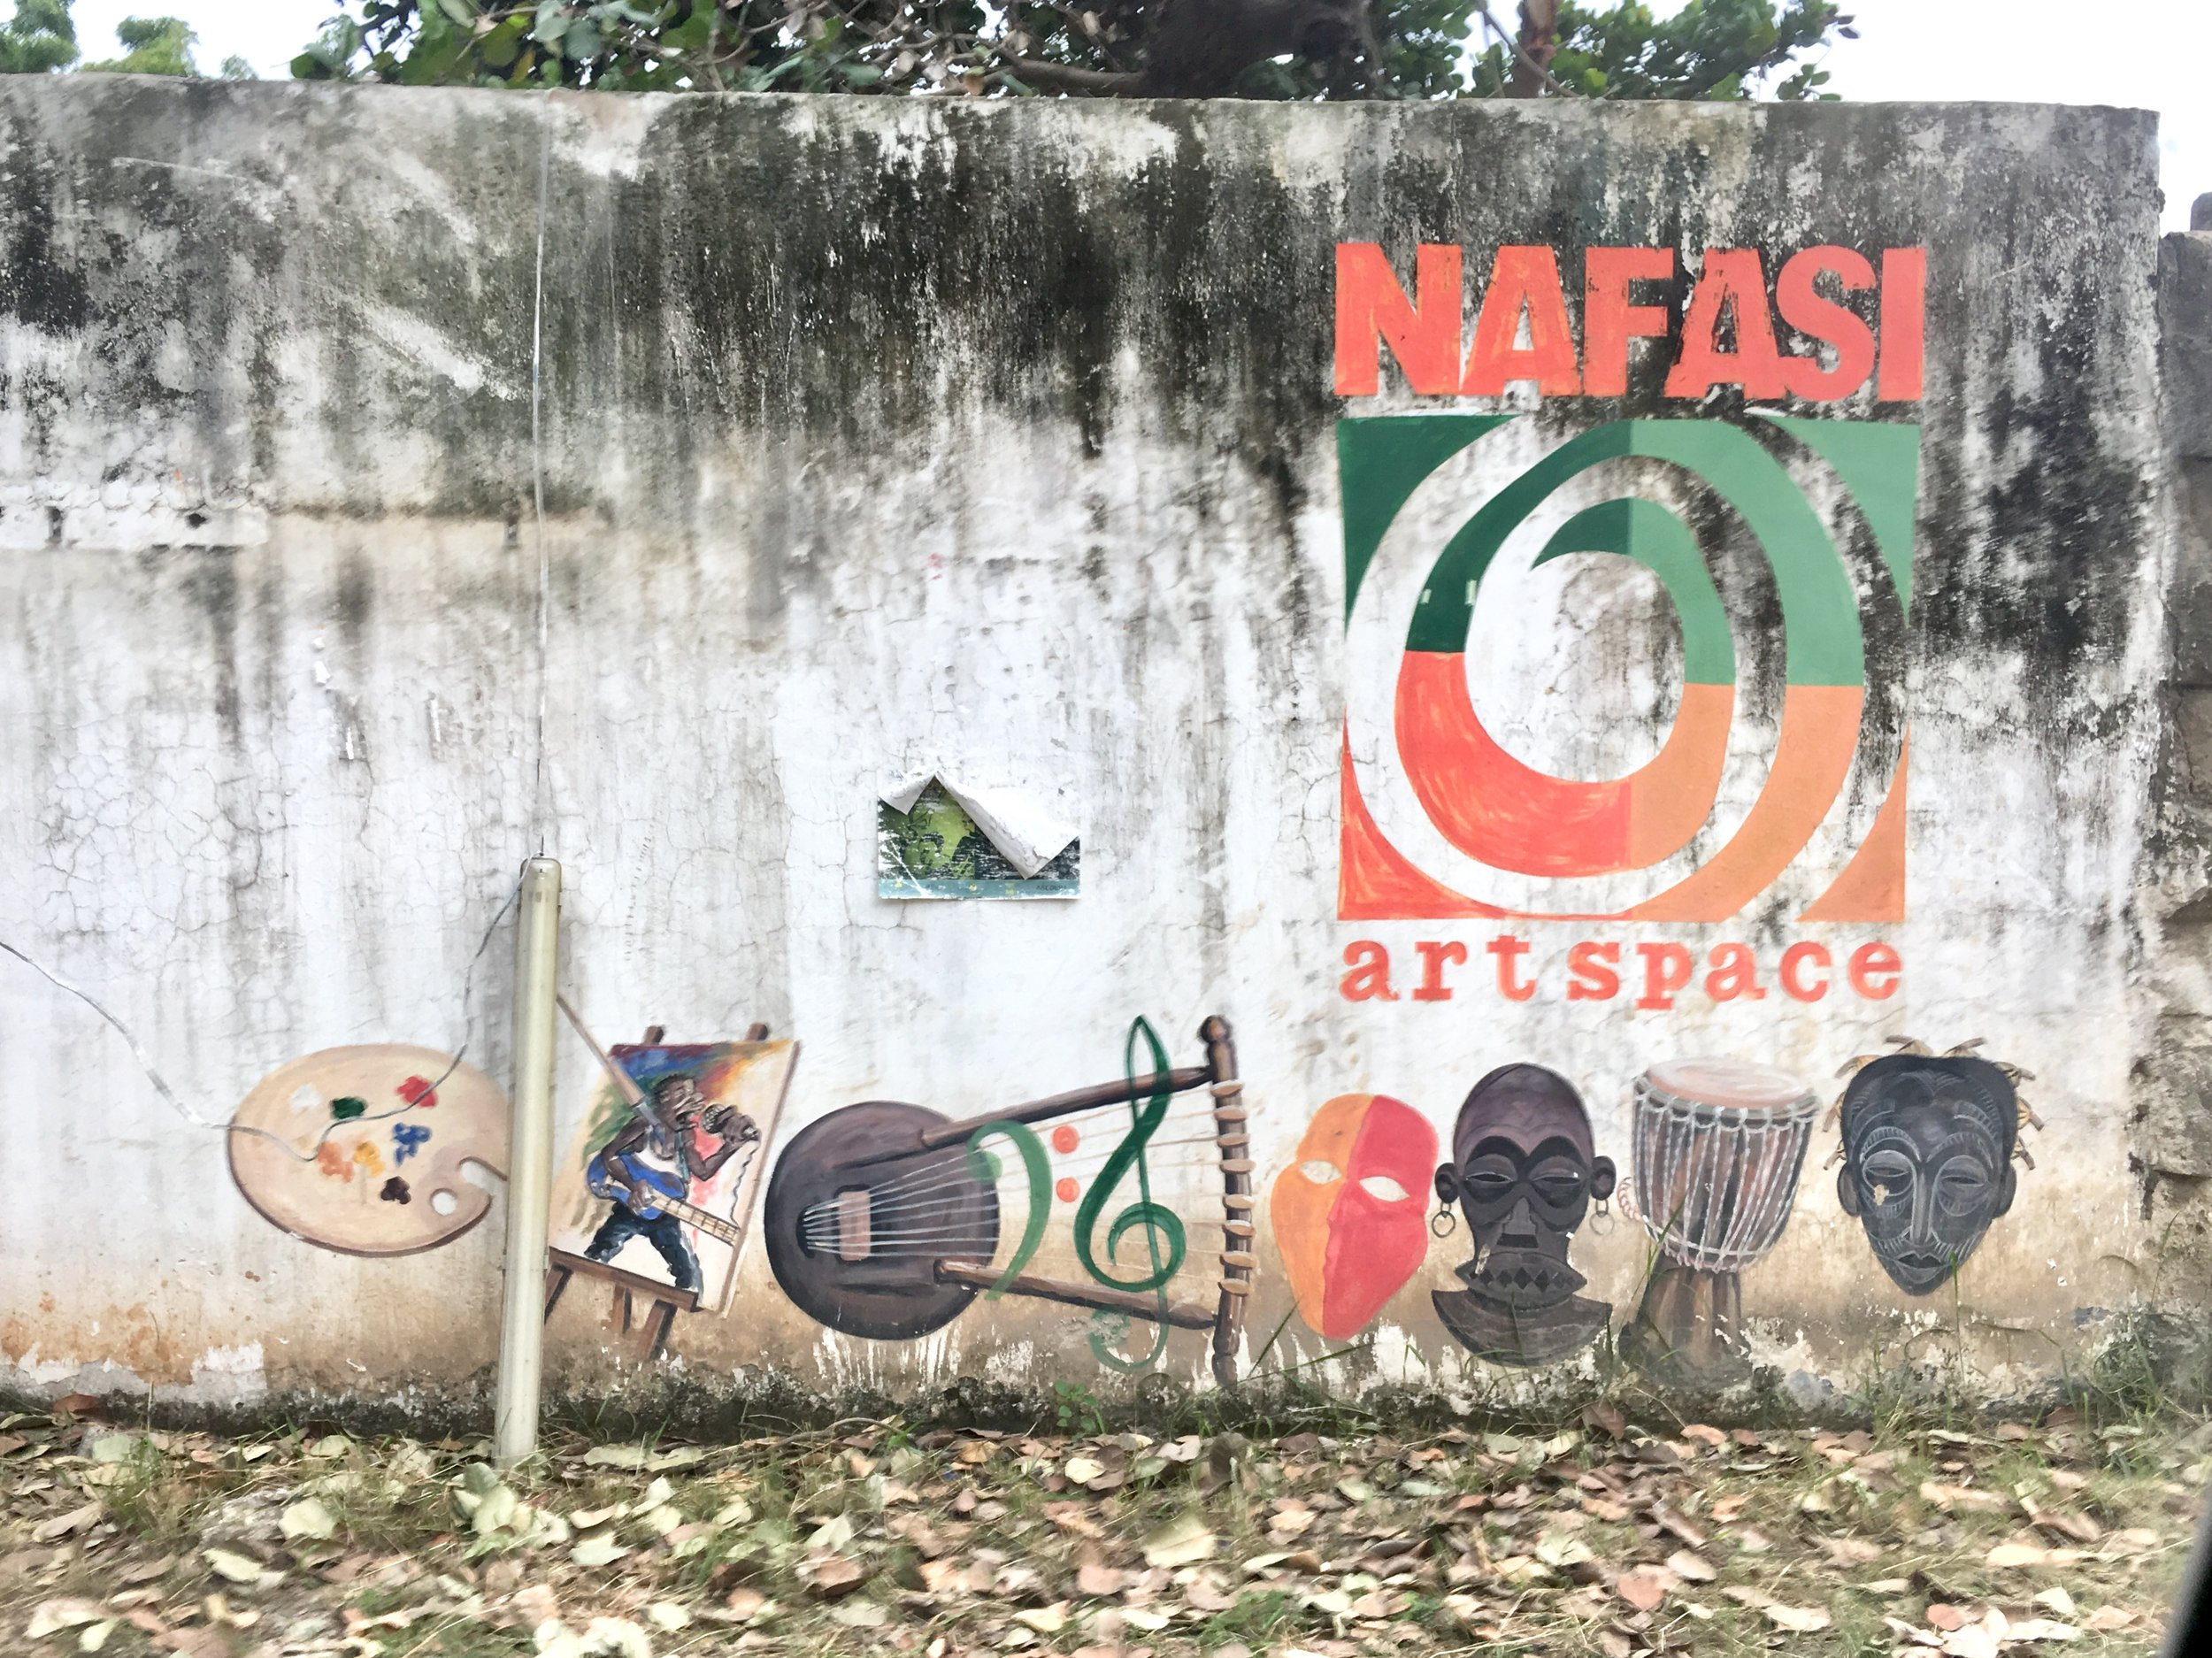 Entrance to Nafasi Art Space.